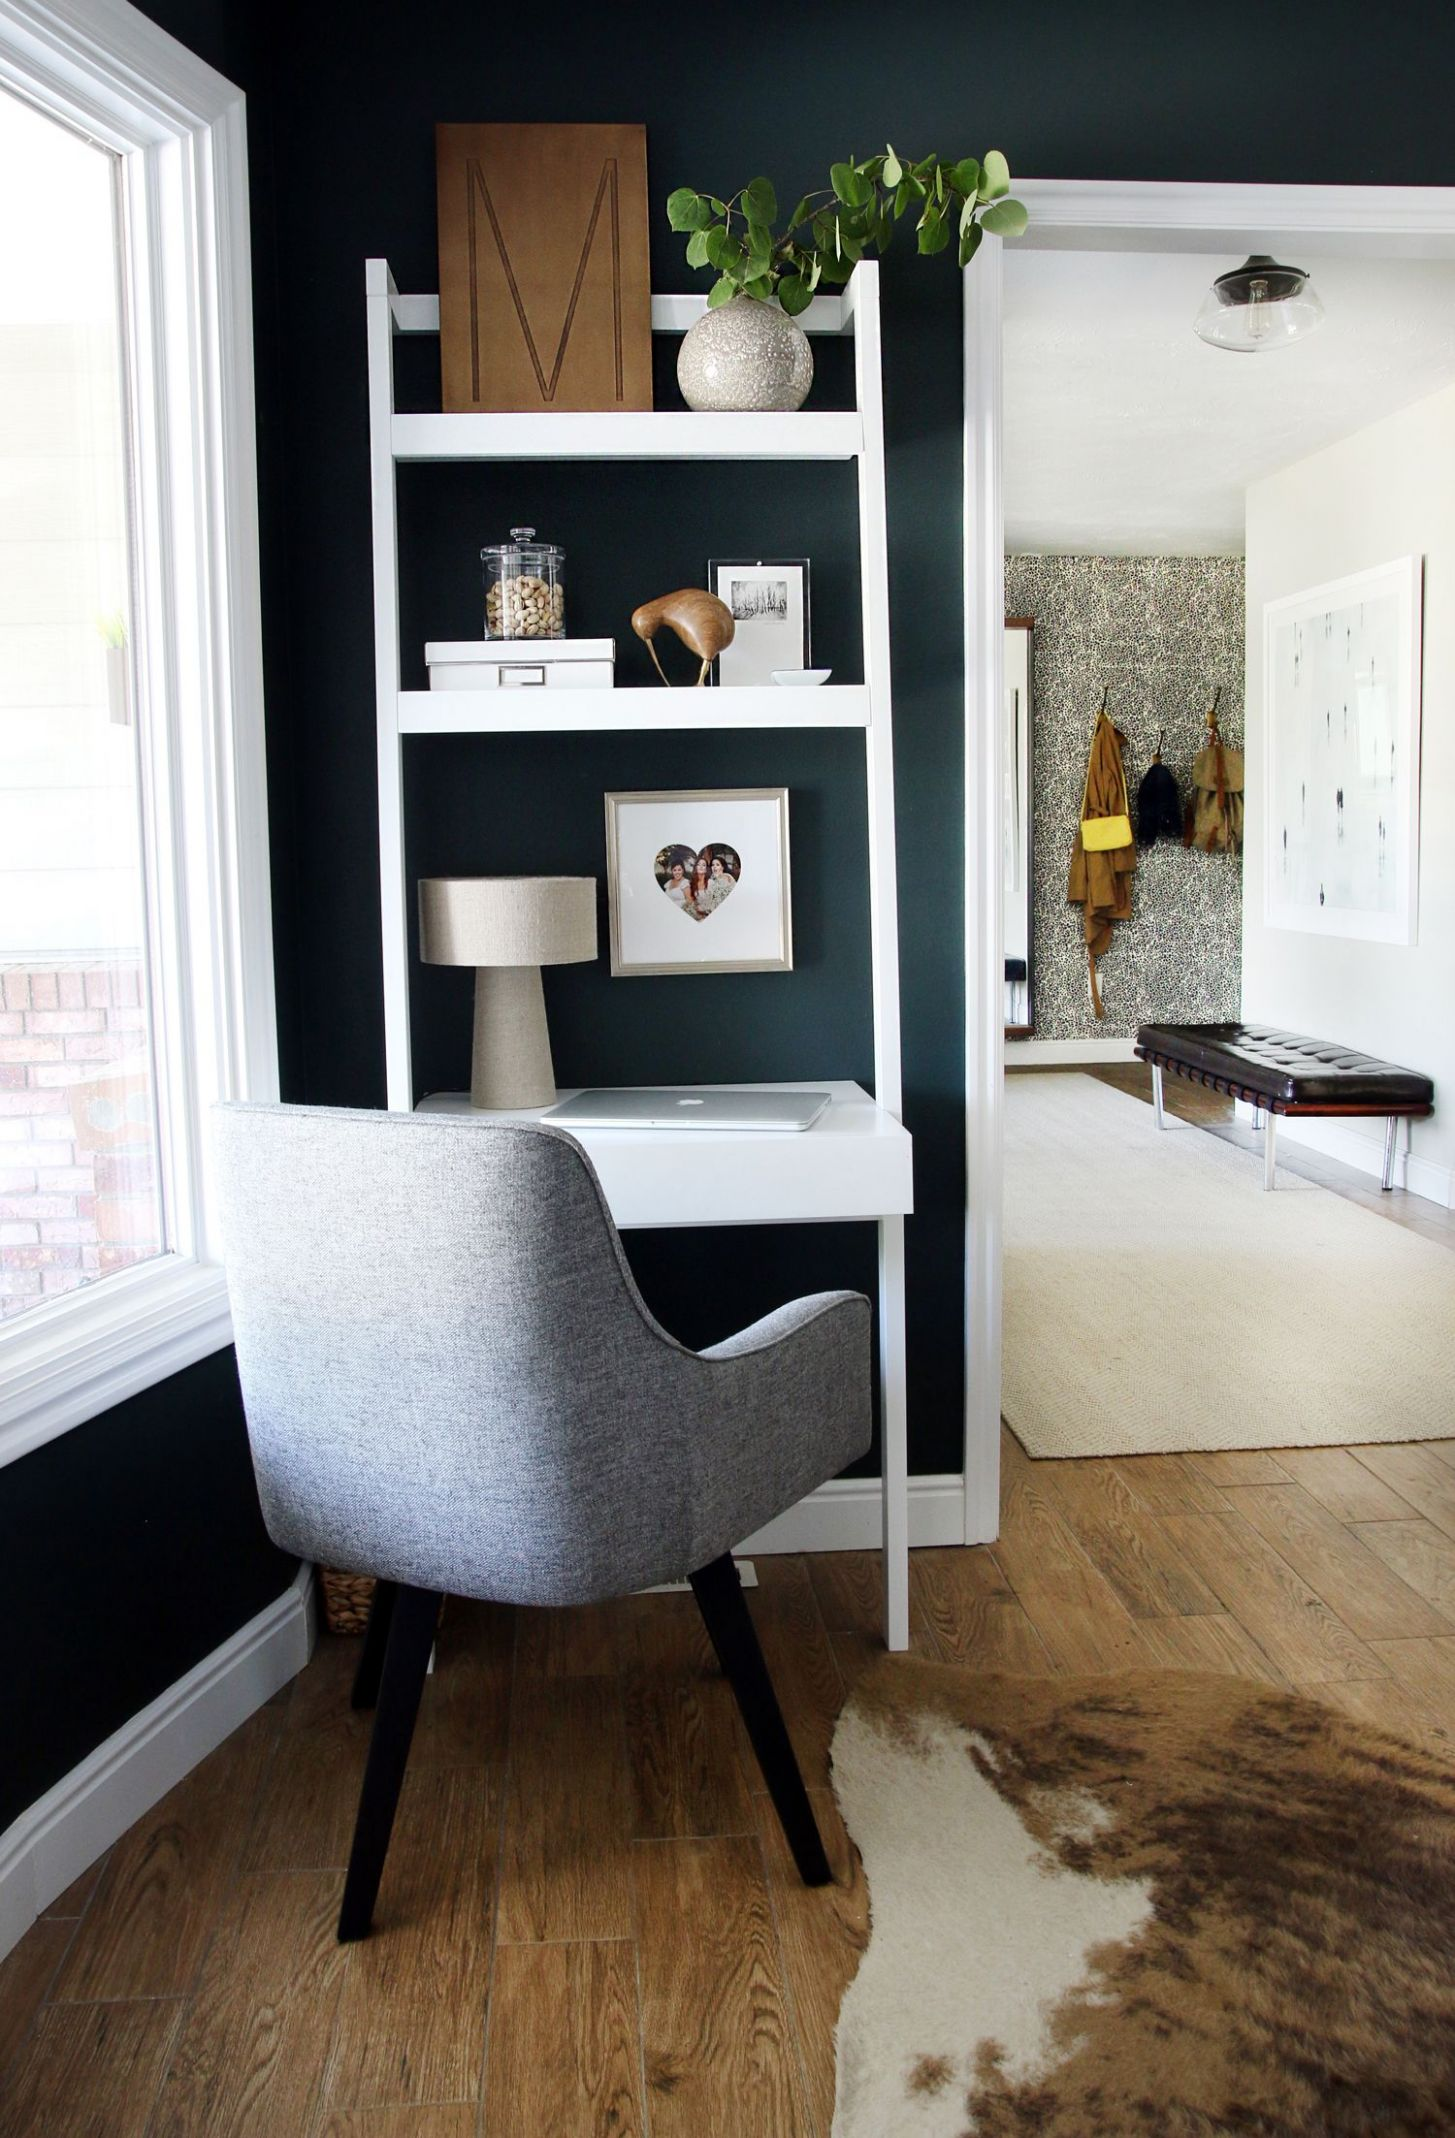 Small Home Office Ideas (With images) | Small home offices, Desk ..